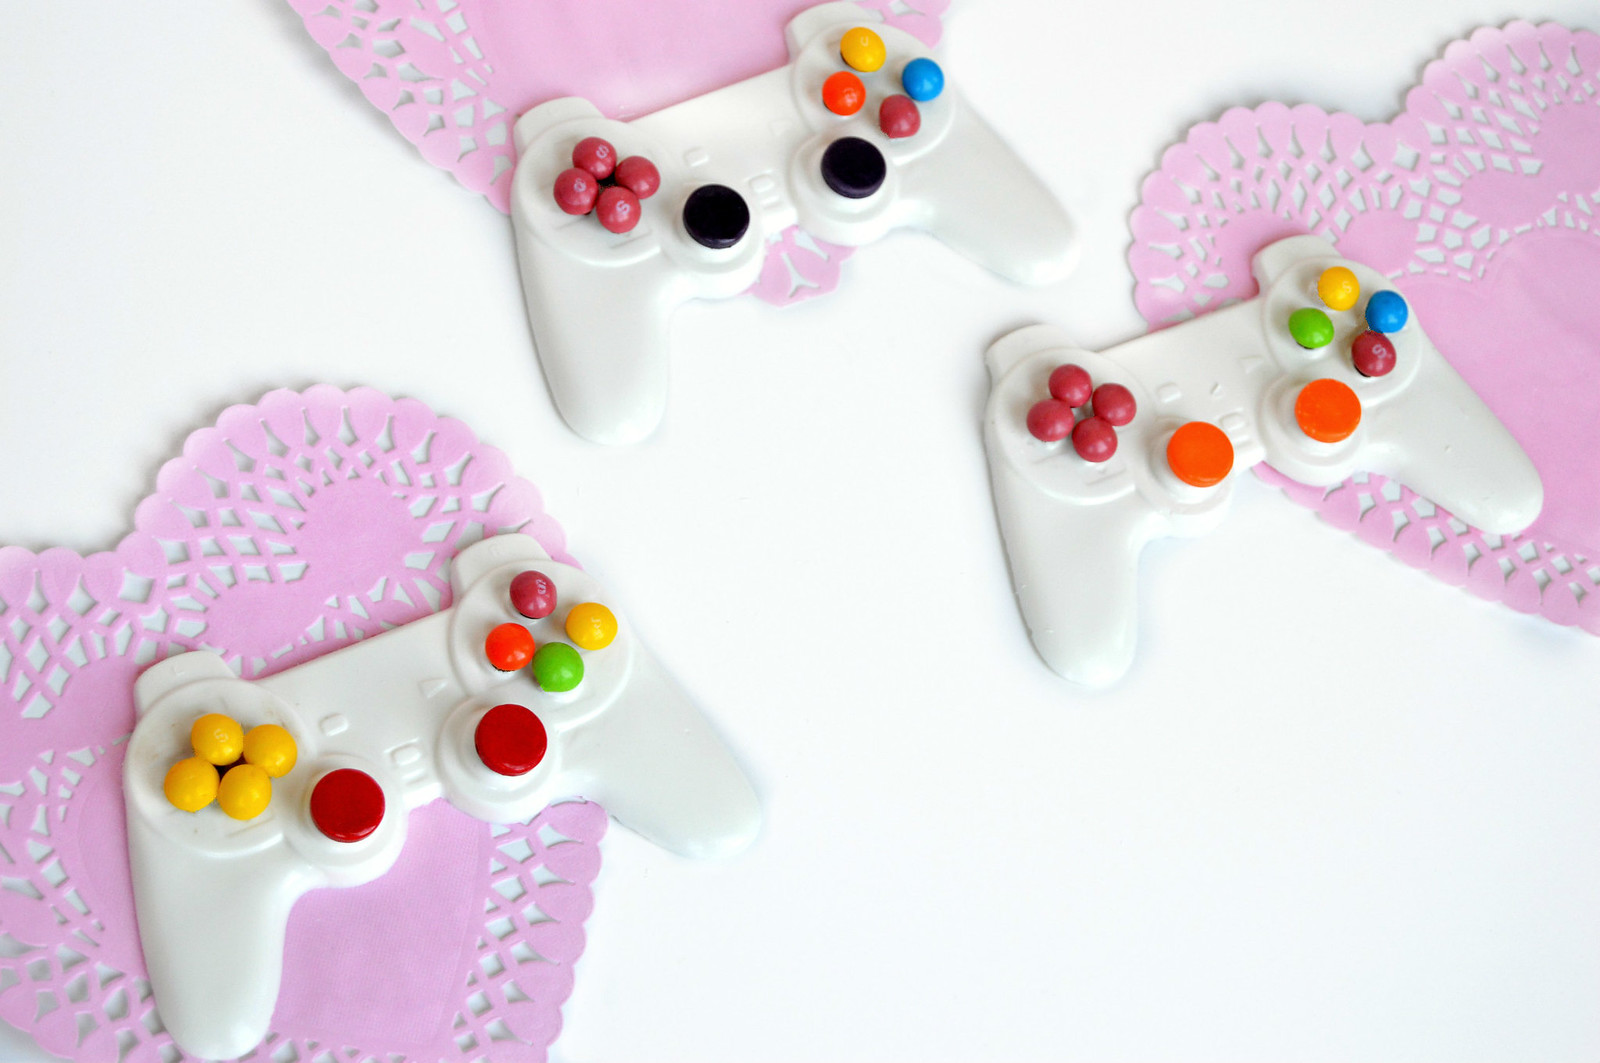 game controllers 4